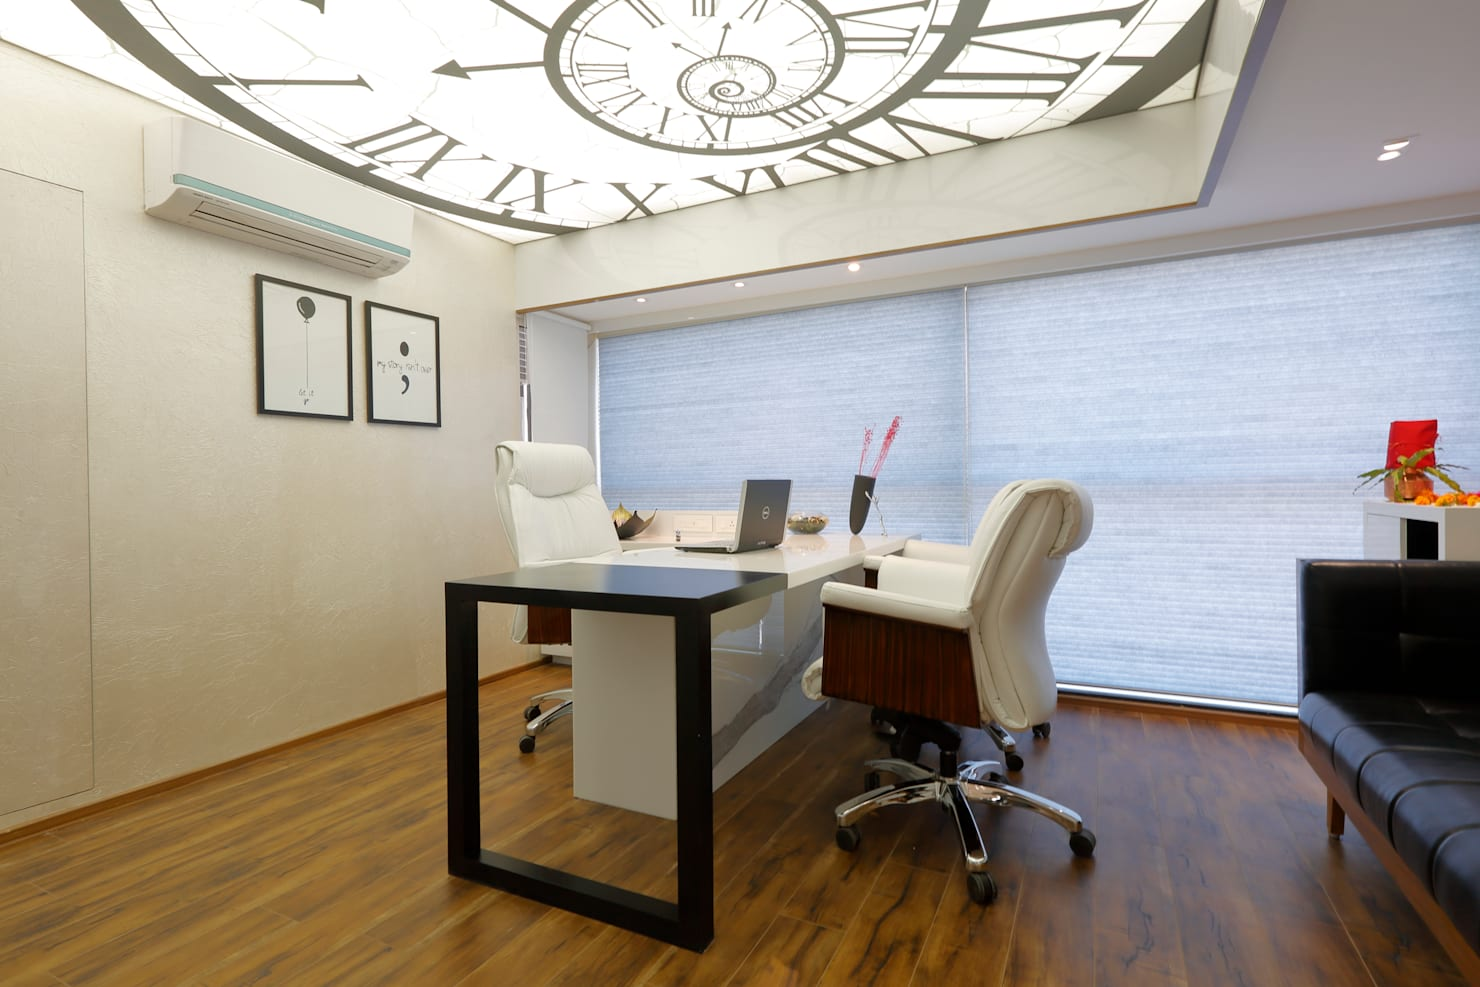 An office in Ahmedabad that reflects class and style